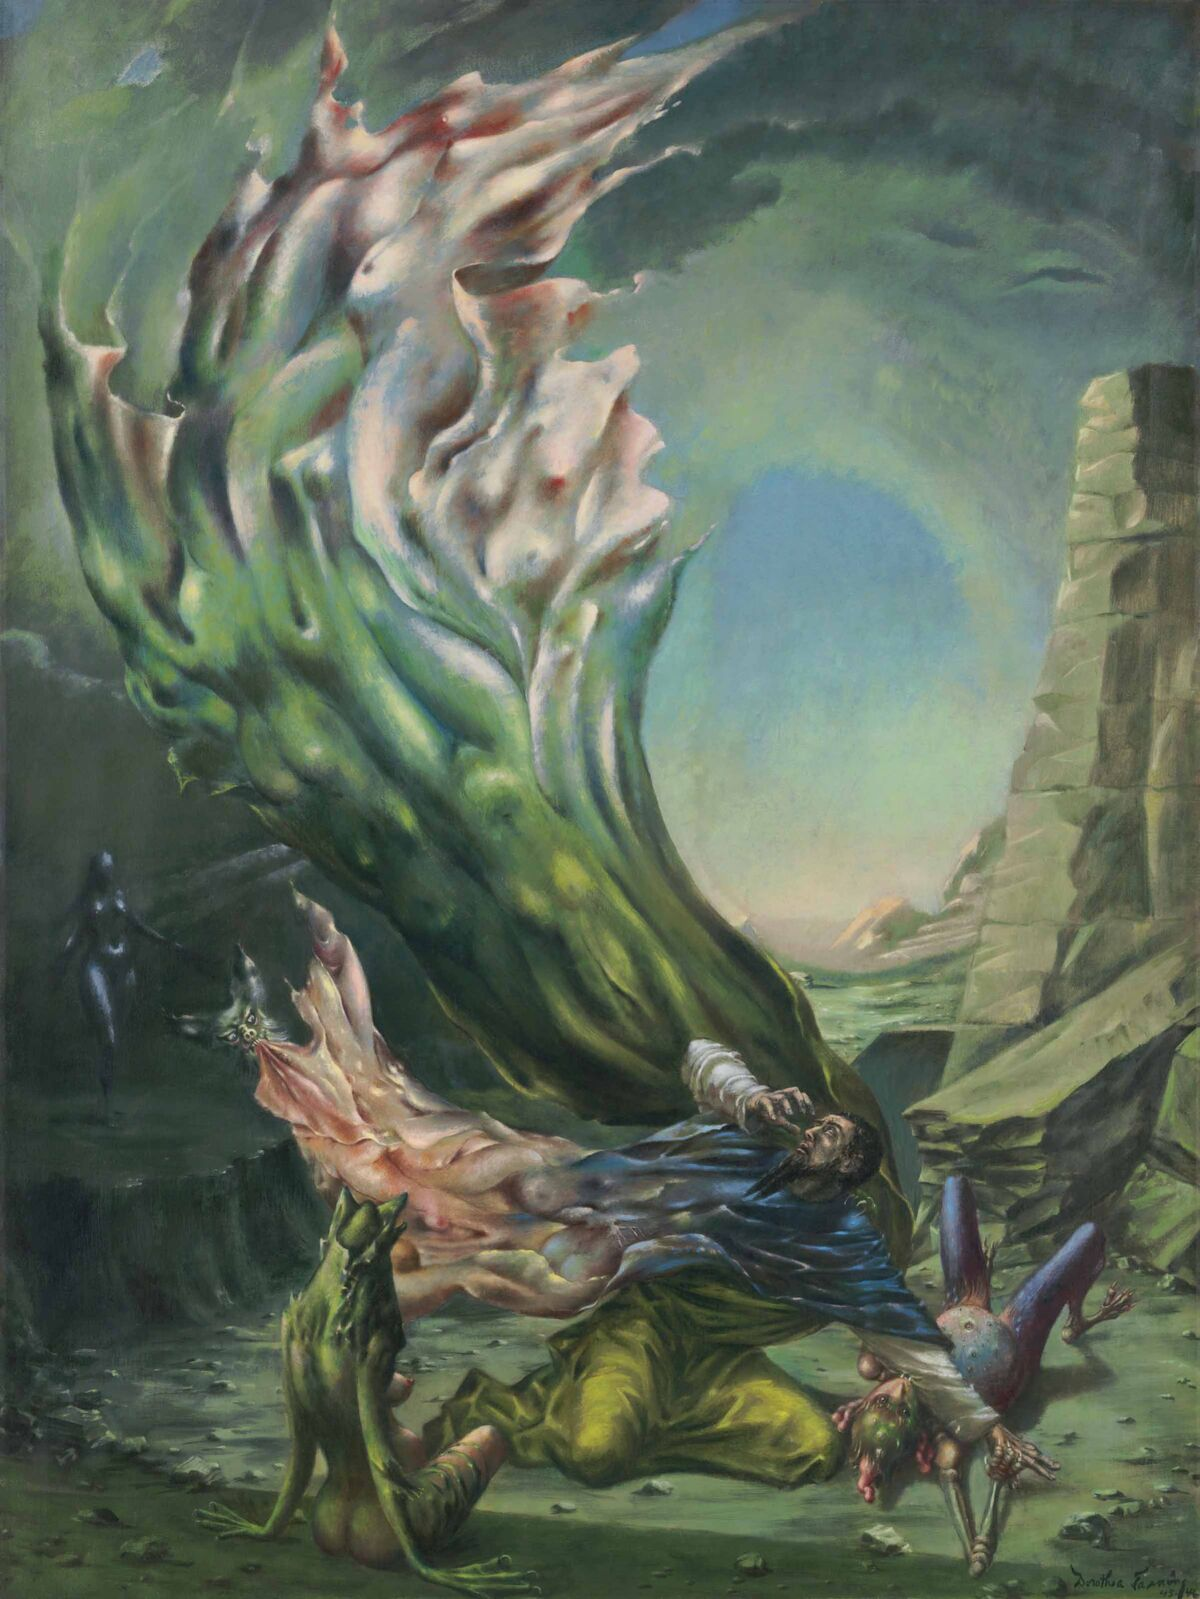 Dorothea Tanning, The Temptation of St. Anthony, 1945-46. Courtesy of Christie's.